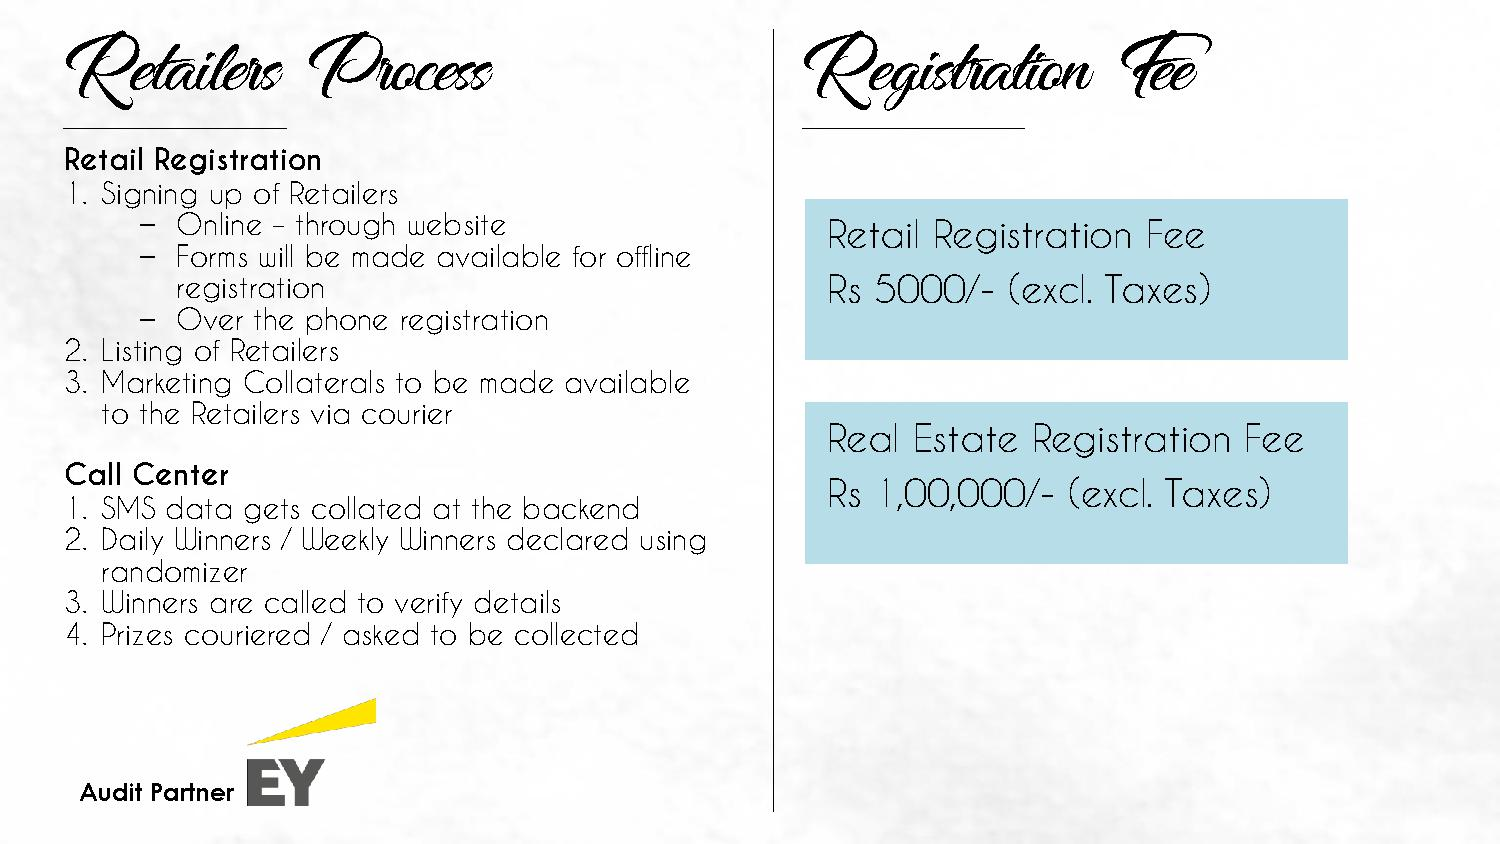 Retailers Process Retail Registration 1. Signing up of Retailers − Online – through website − Forms will be made available for offline registration − Over the phone registration 2. Listing of Retailers 3. Marketing Collaterals to be made available to the Retailers via courier Call Center 1. SMS data gets collated at the backend 2. Daily Winners / Weekly Winners declared using randomizer 3. Winners are called to verify details 4. Prizes couriered / asked to be collected Registration Fee Retail Registration Fee Rs 5000/- (excl. Taxes) Real Estate Registration Fee Rs 1,00,000/- (excl. Taxes)